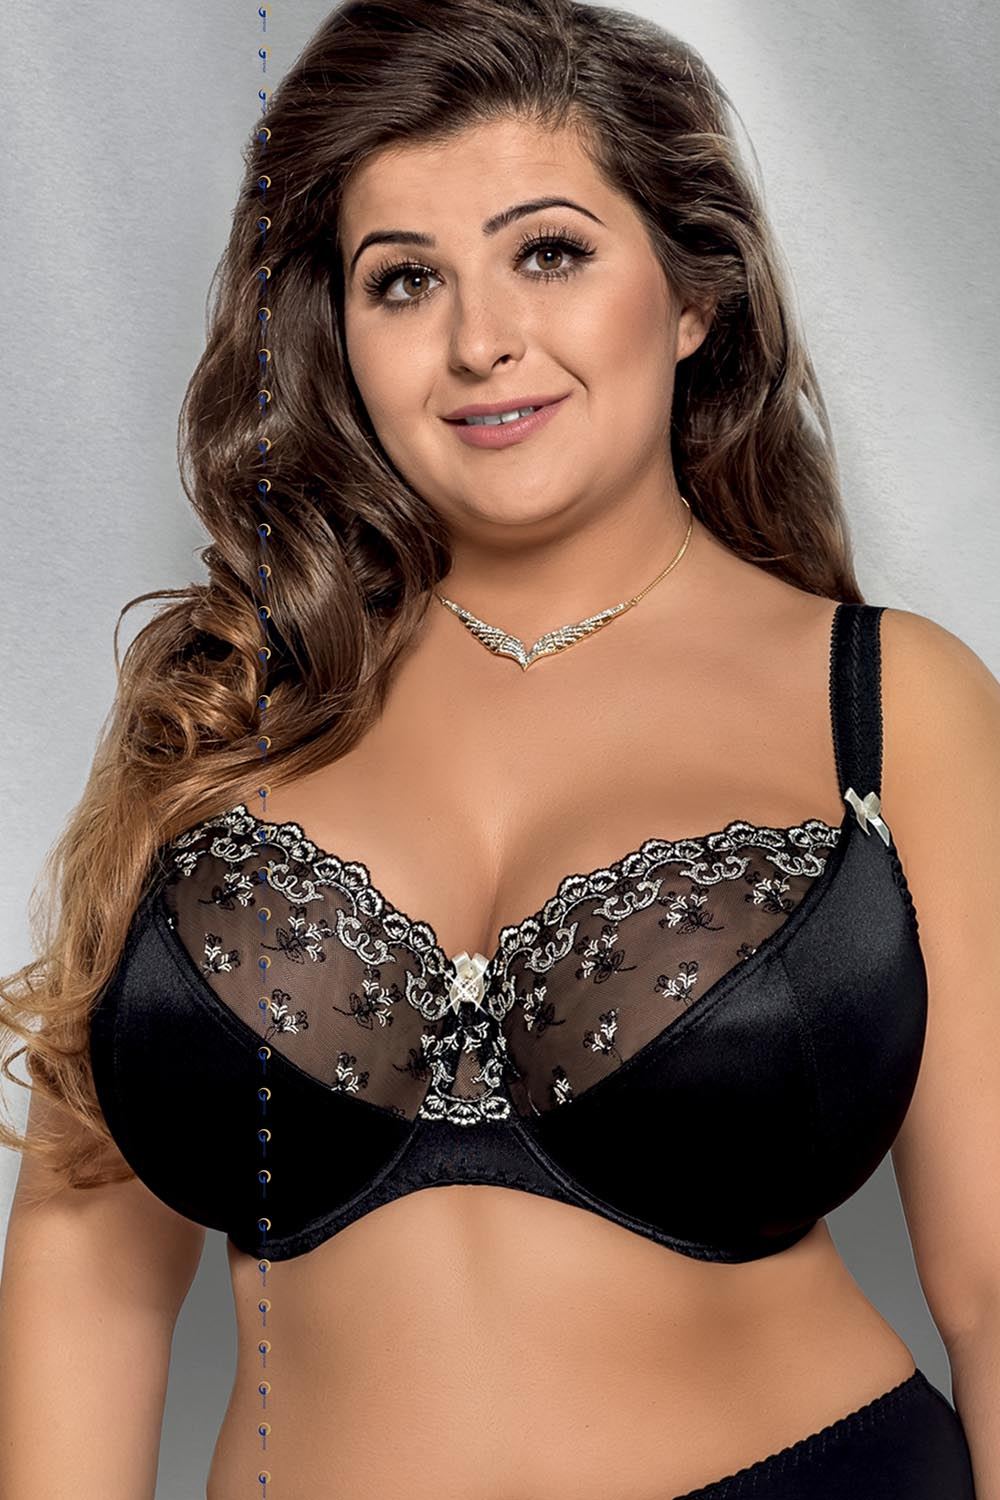 9107f4eba65 Gorsenia K213 Marlene underwired non padded full cup embroidered plus size  bra